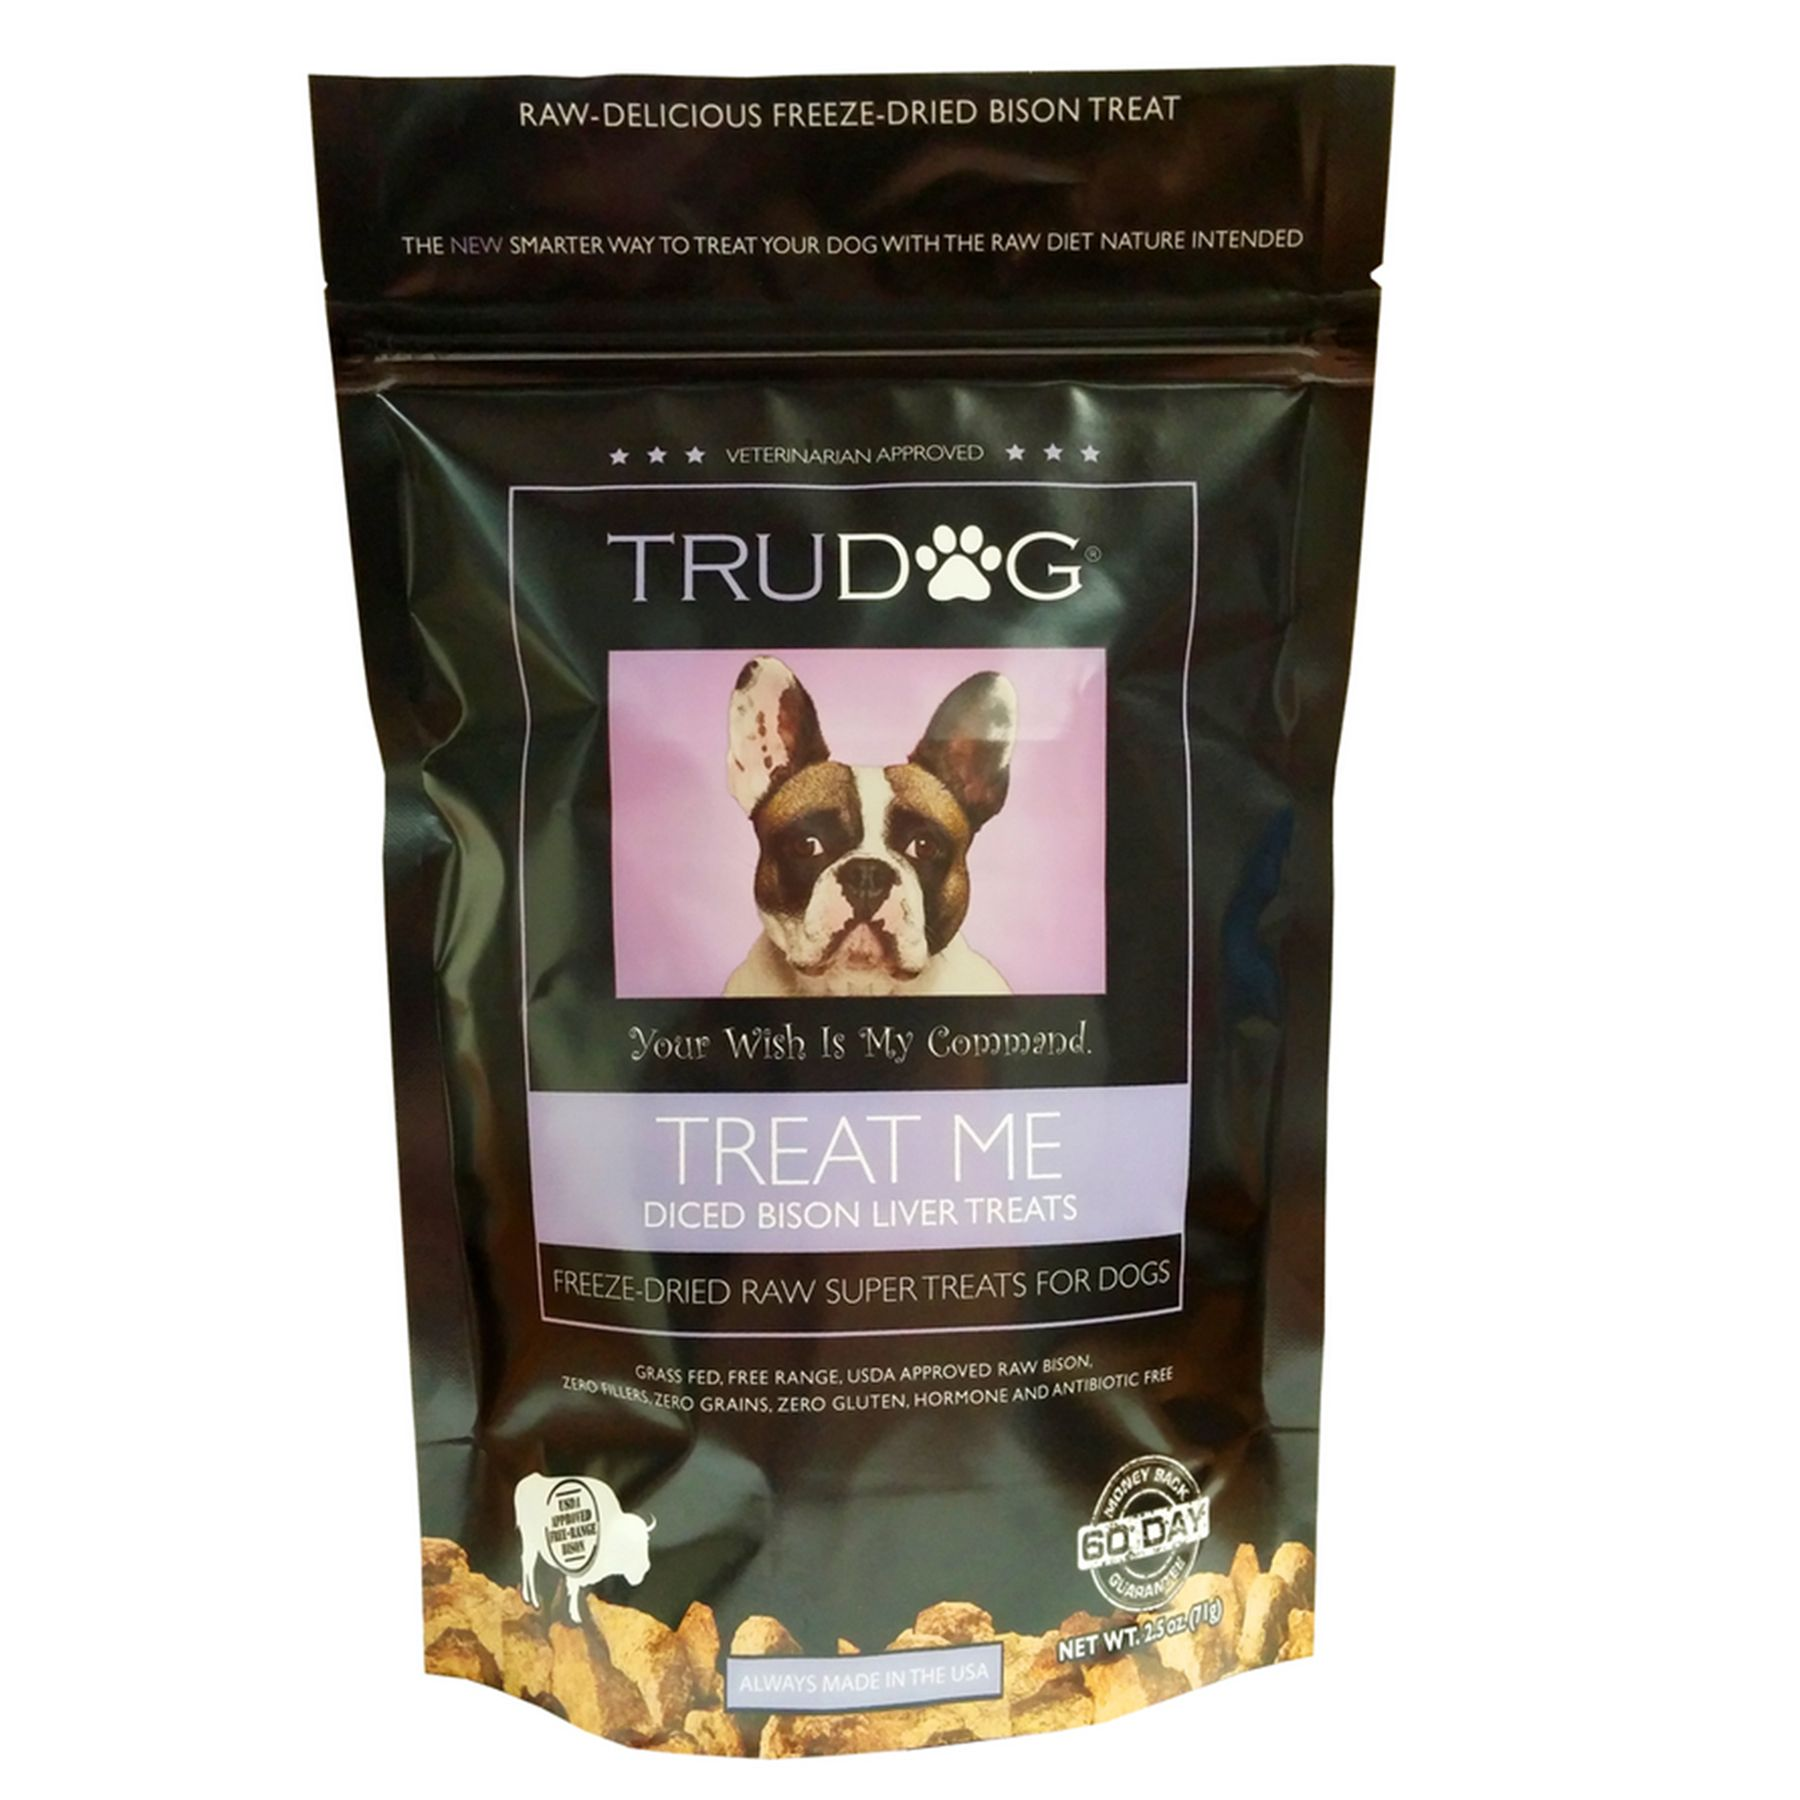 Trudog Treat Me Dog Treat Freeze Dried Raw Natural Bison Liver Size 2.5 Oz